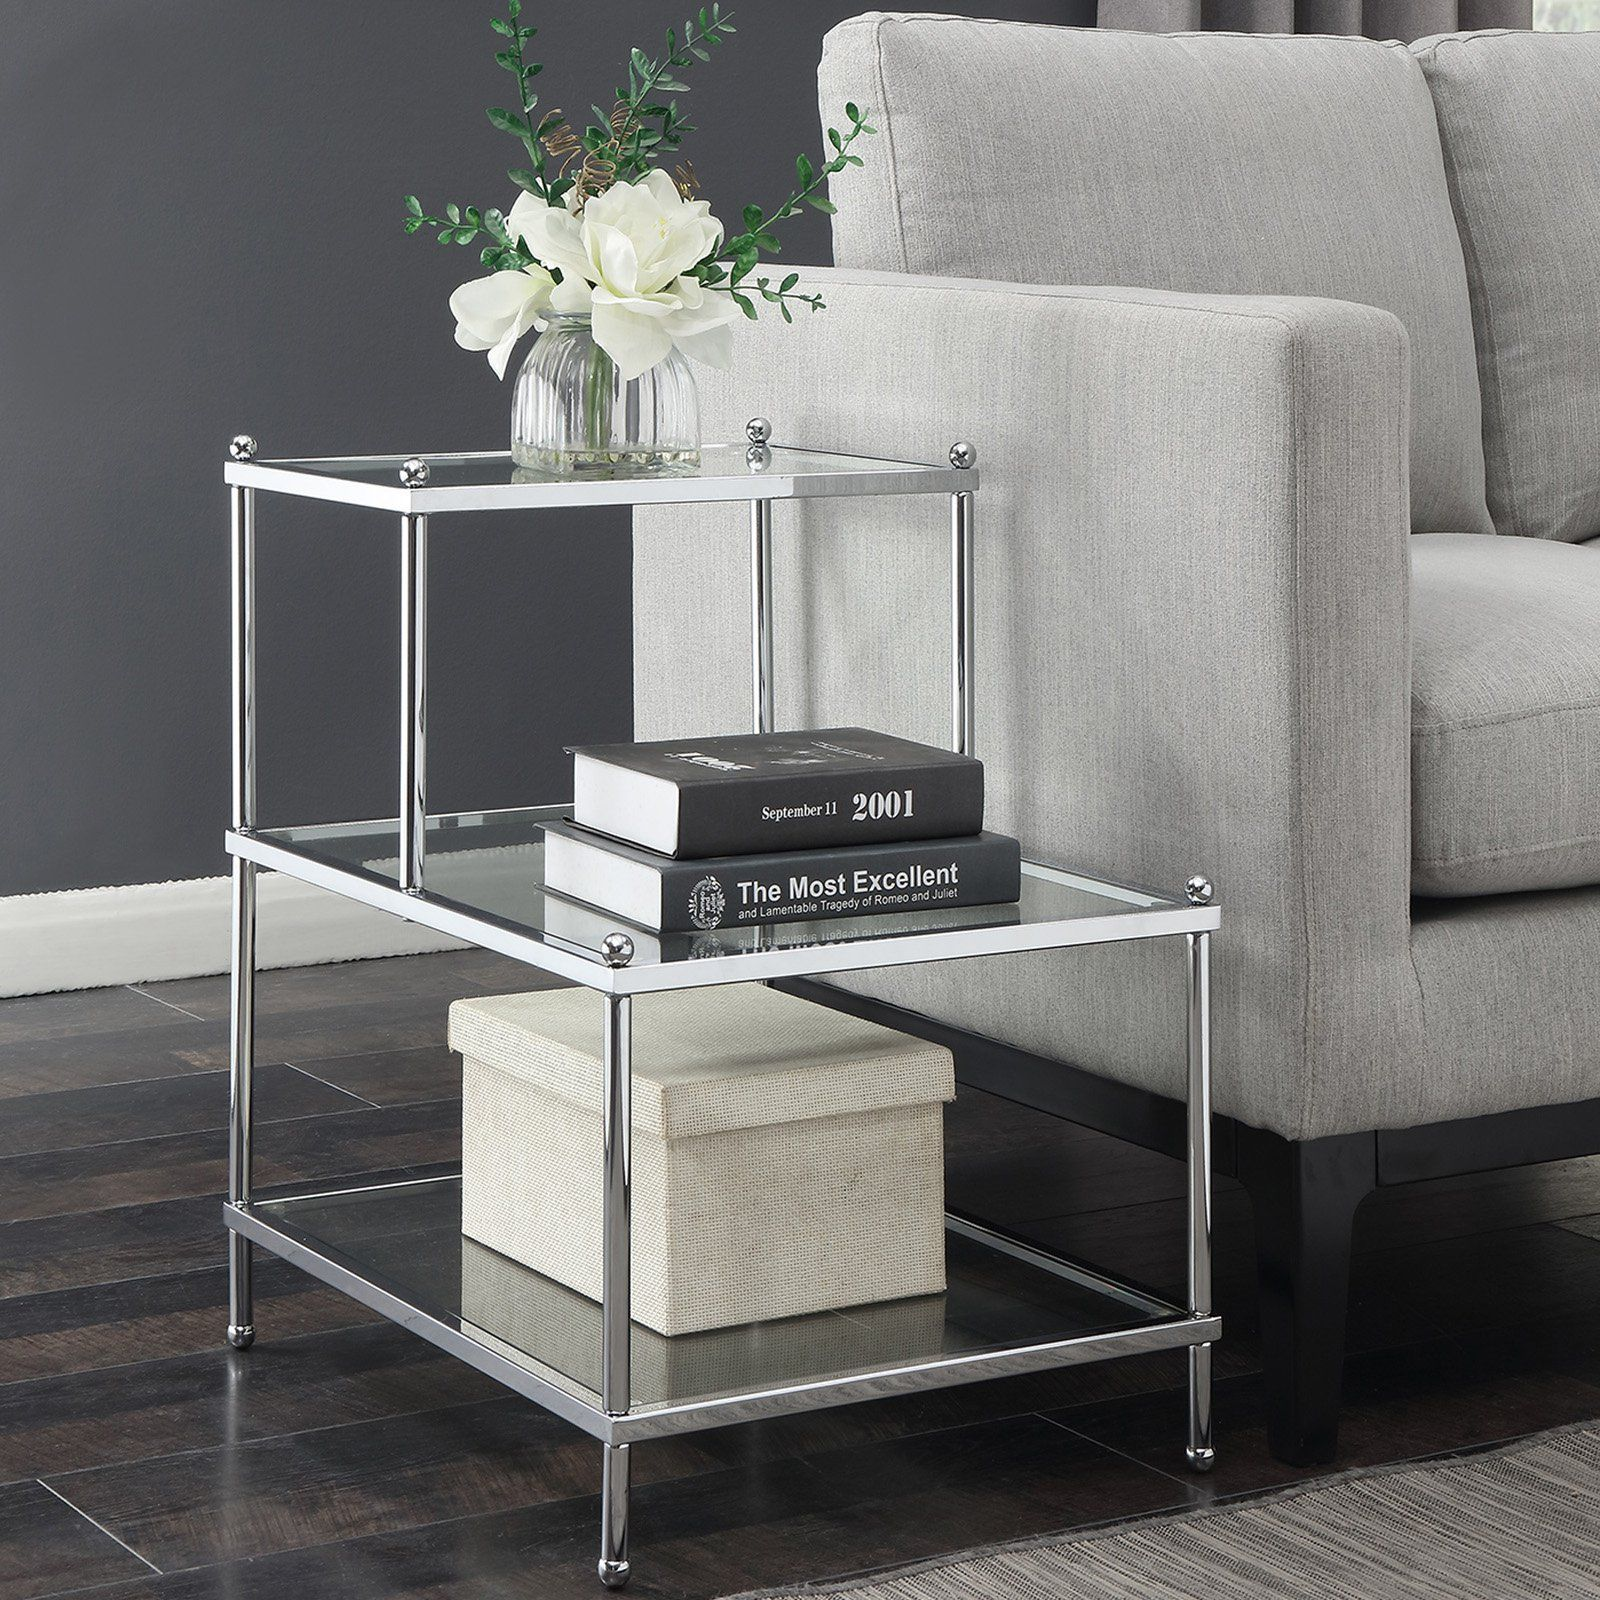 Convenience Concepts Royal Crest 3 Tier Step End Table In 2019 End Tables Furniture Table